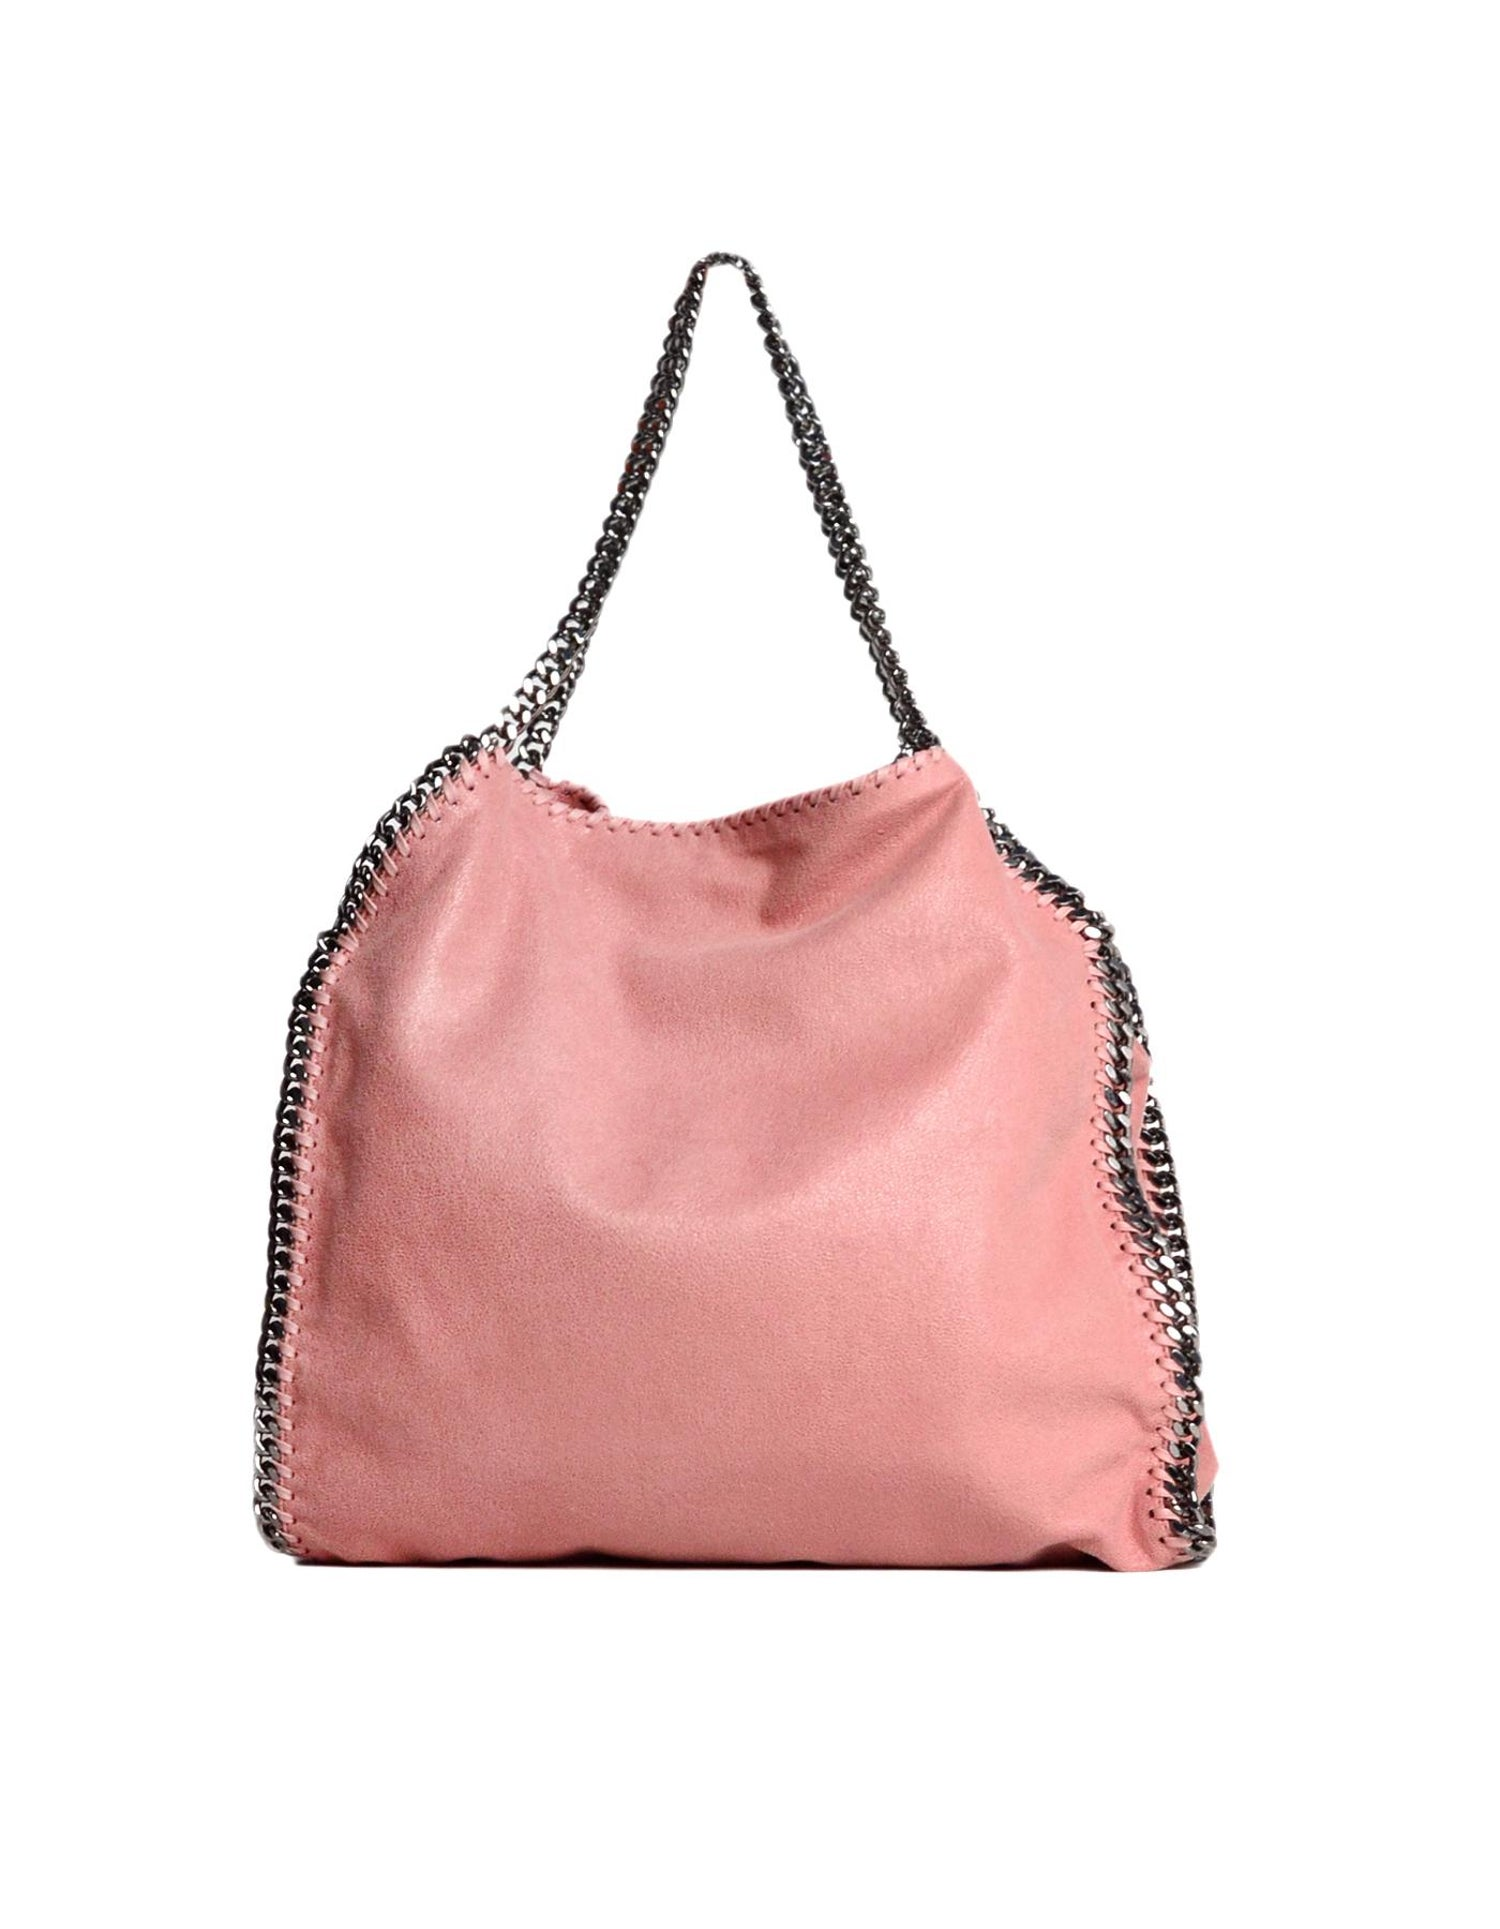 5112f4da700b Stella McCartney Rose Pink Vegan Sueded Leather Small Falabella Shaggy Deer  Tote For Sale at 1stdibs